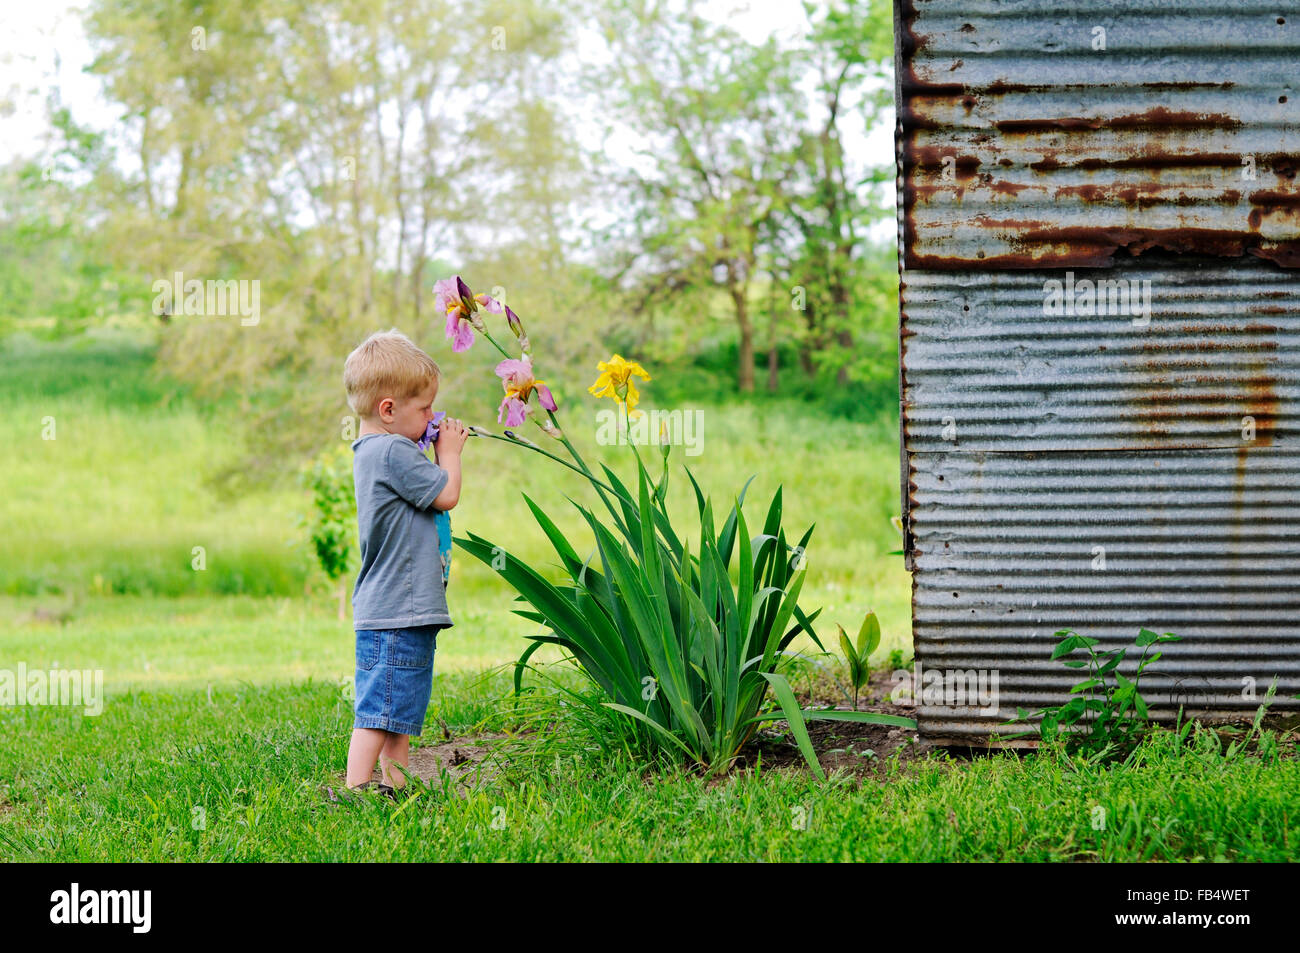 boy smelling Iris flowers by barn - Stock Image